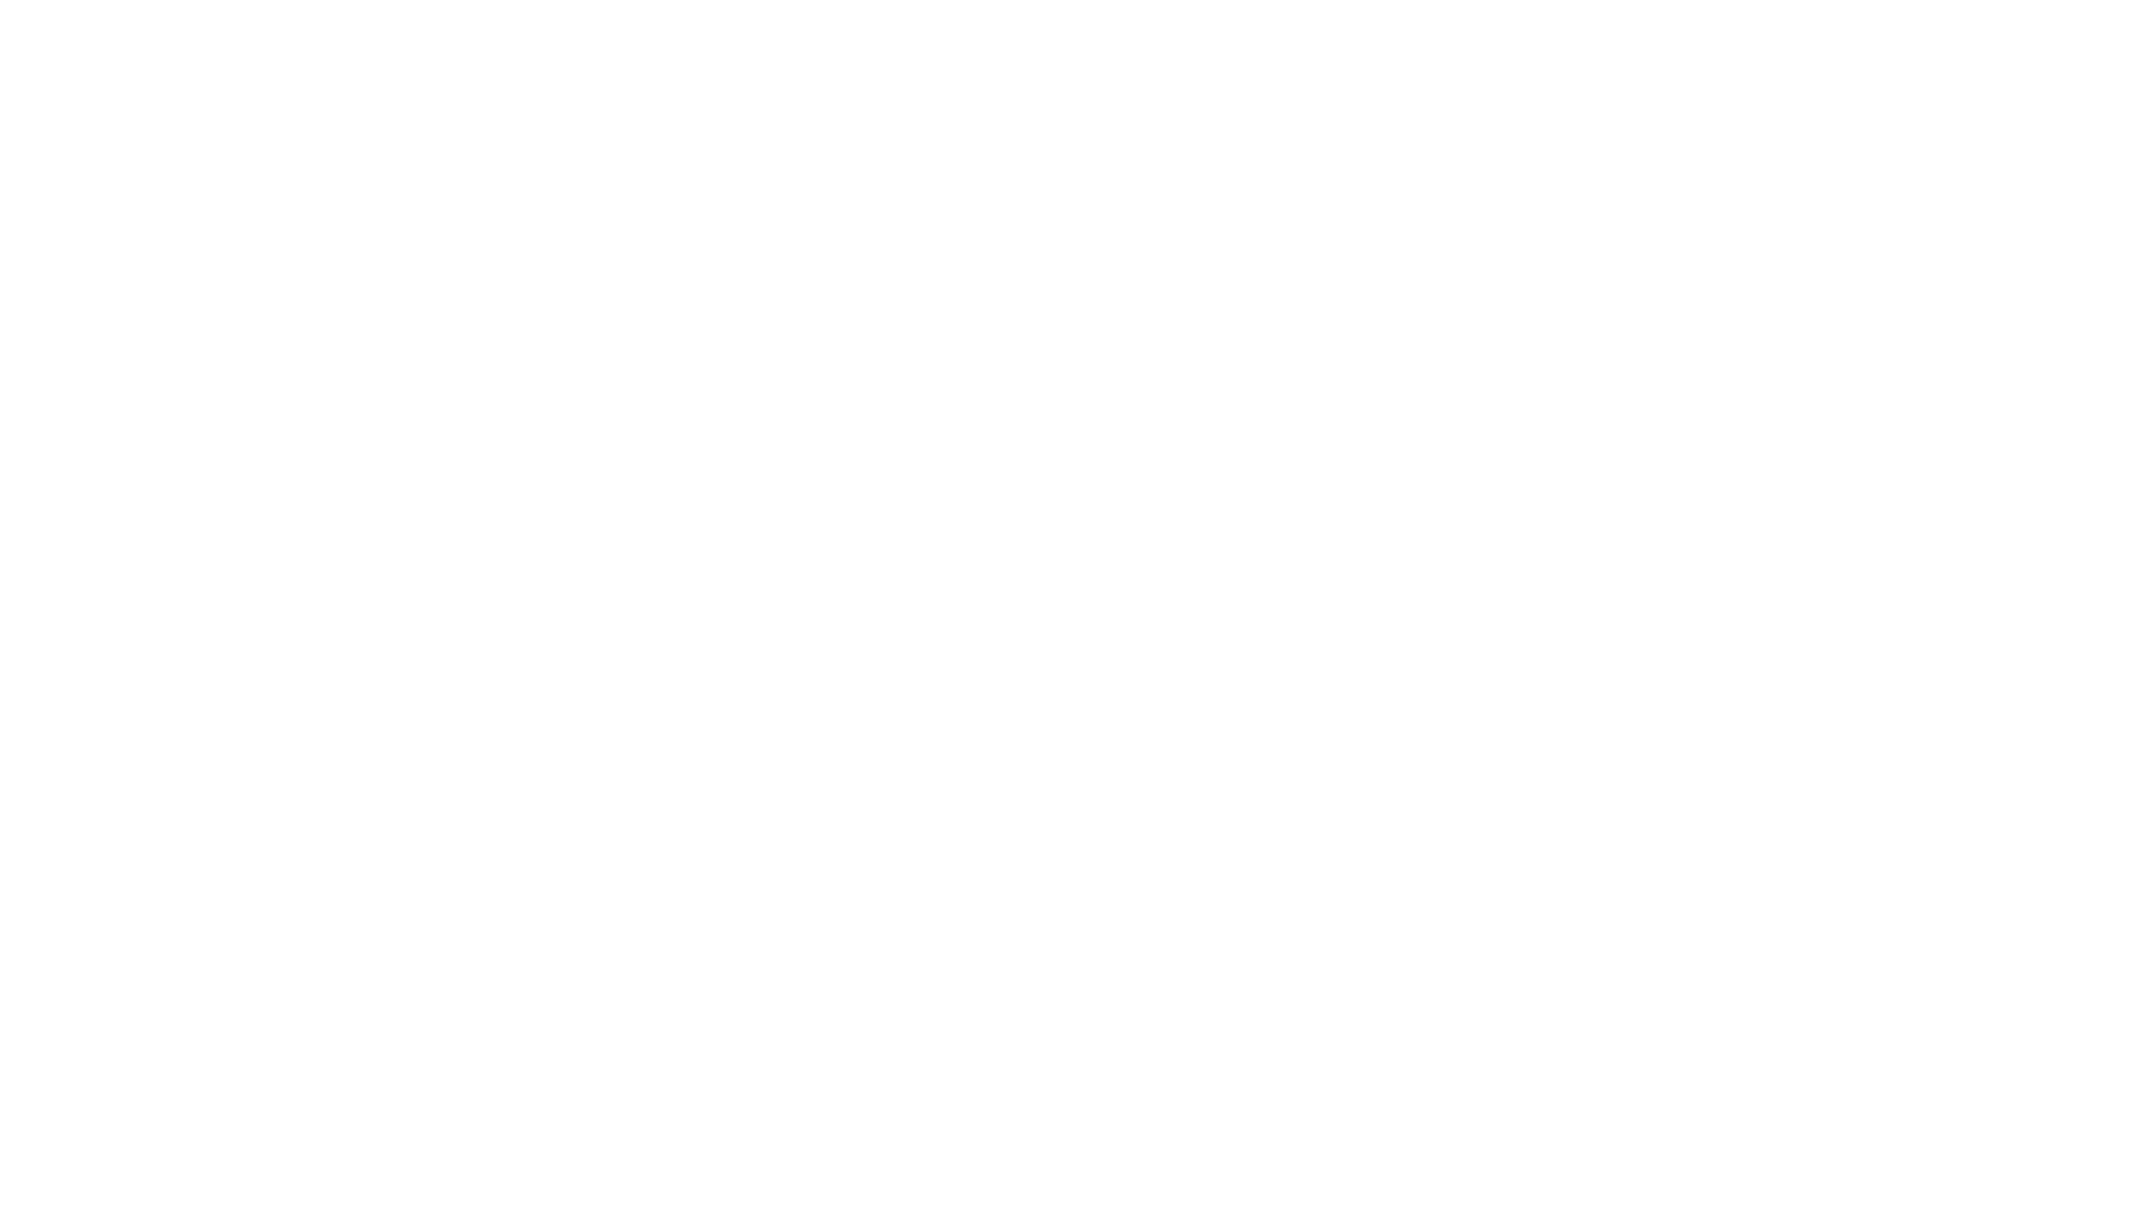 Jackalberry Creek